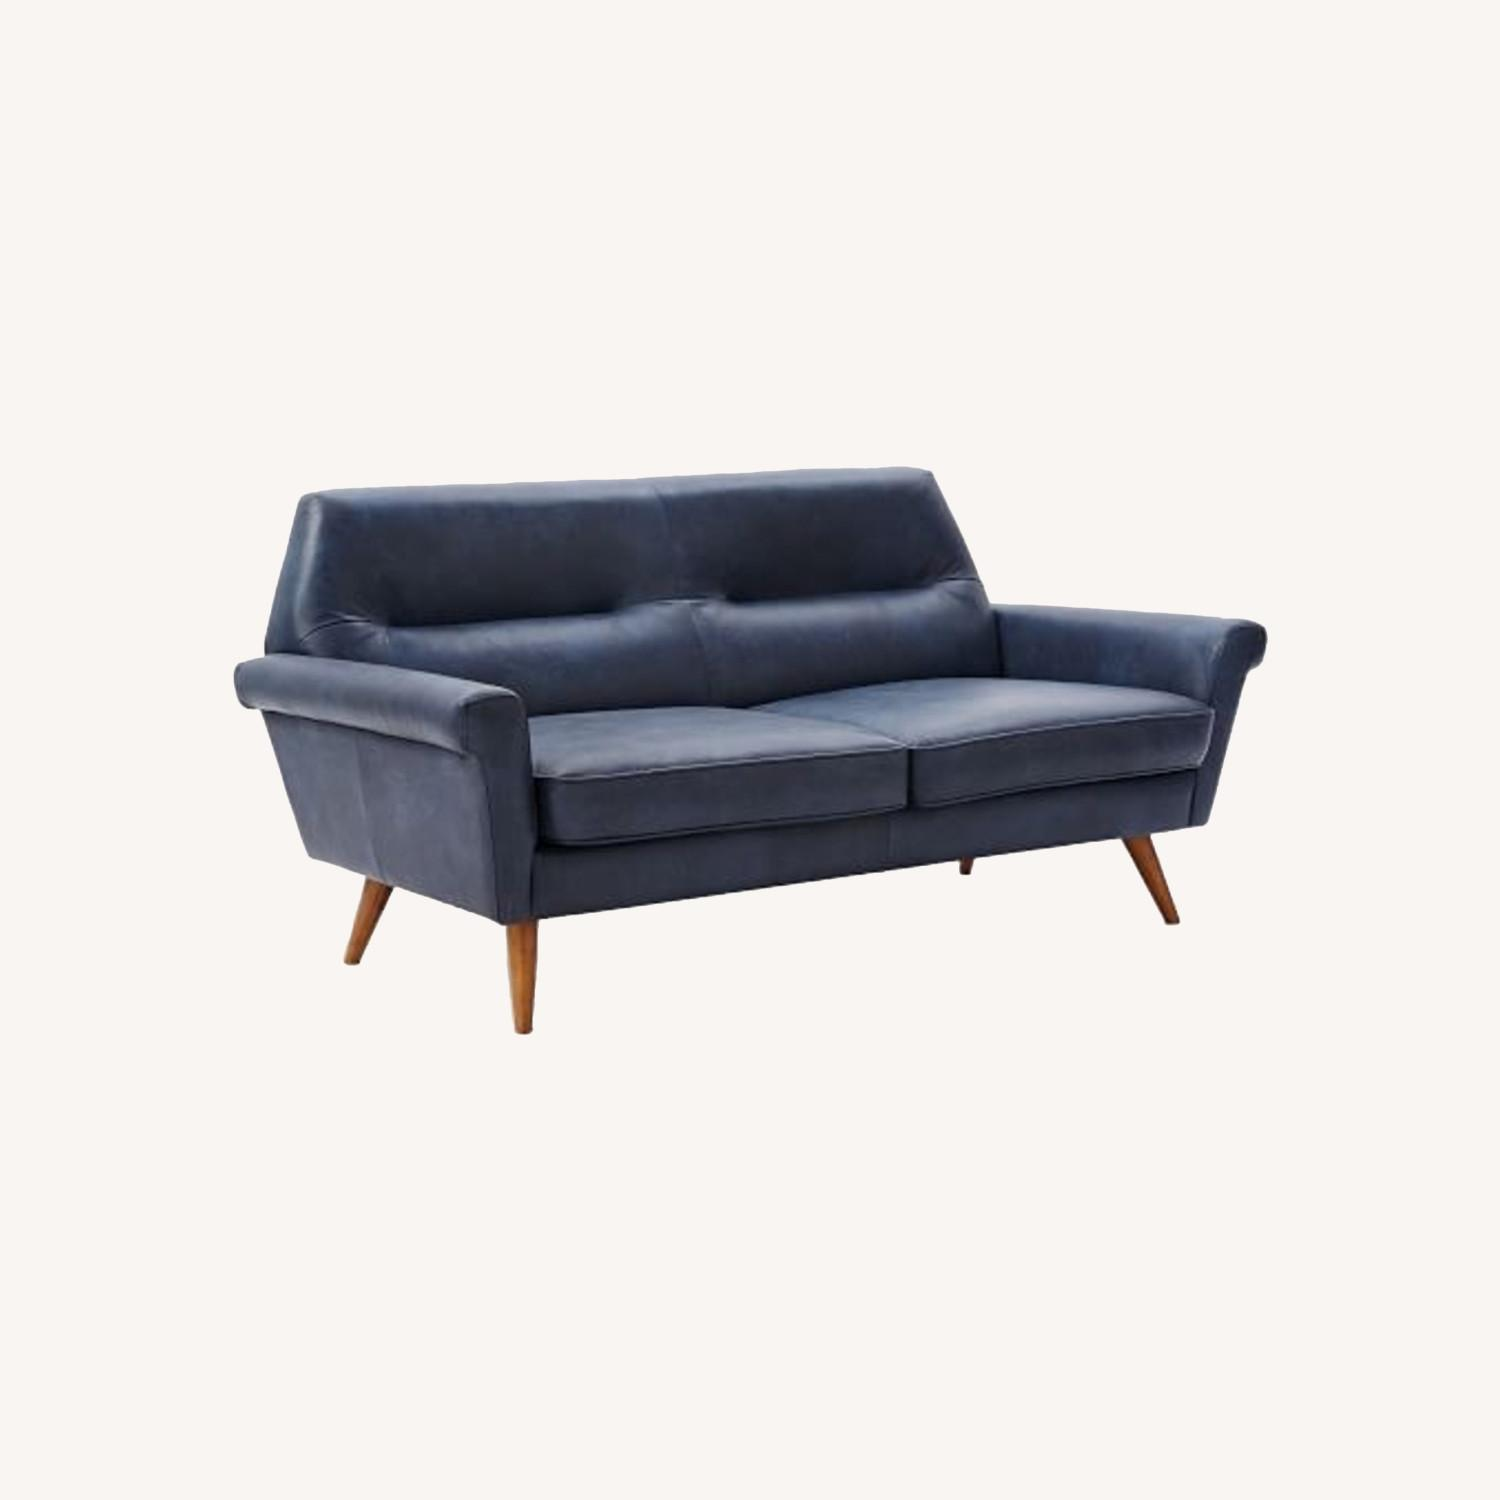 West Elm Leather 2-Seater Sofa - image-0